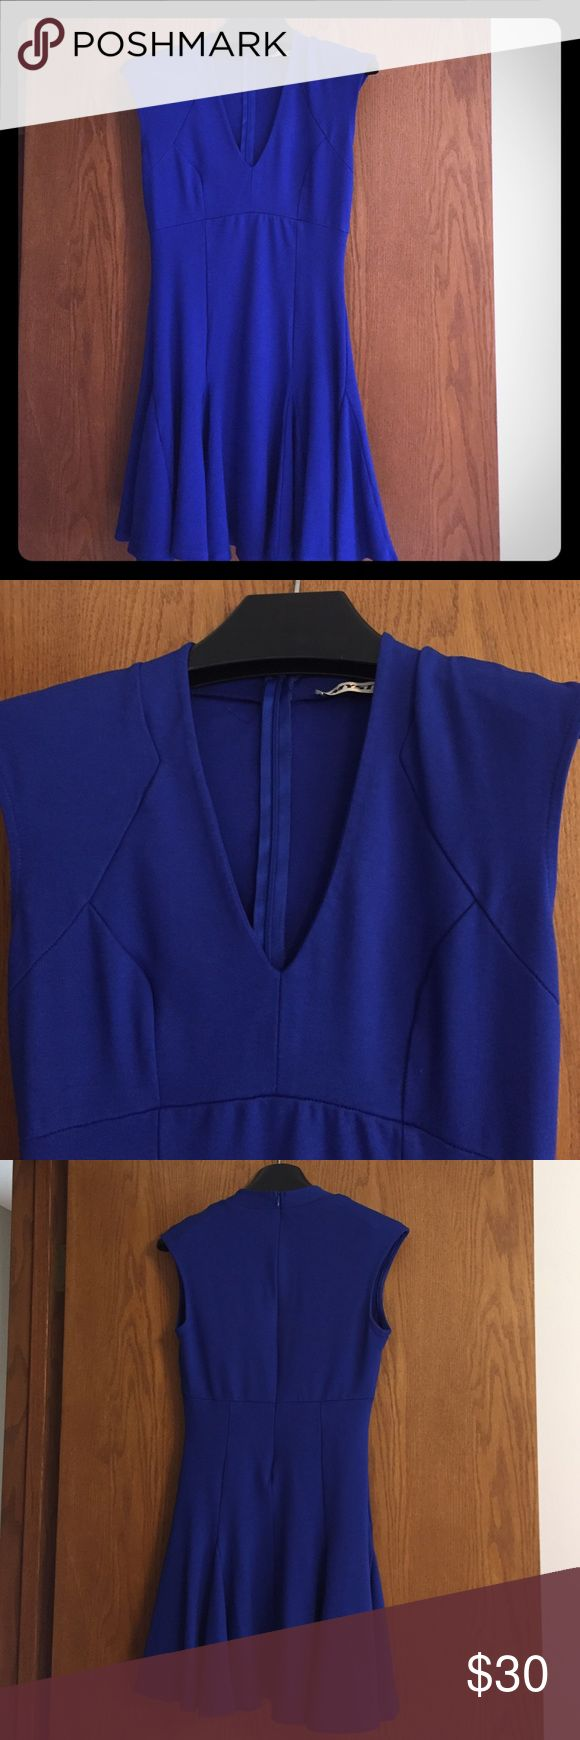 Size Medium Mystic Dress Fabulous and fun bright blue dress. Size Medium buy definitely fits more like a Small, though the material is quite stretchy. Washed once but never worn. Dresses Mini